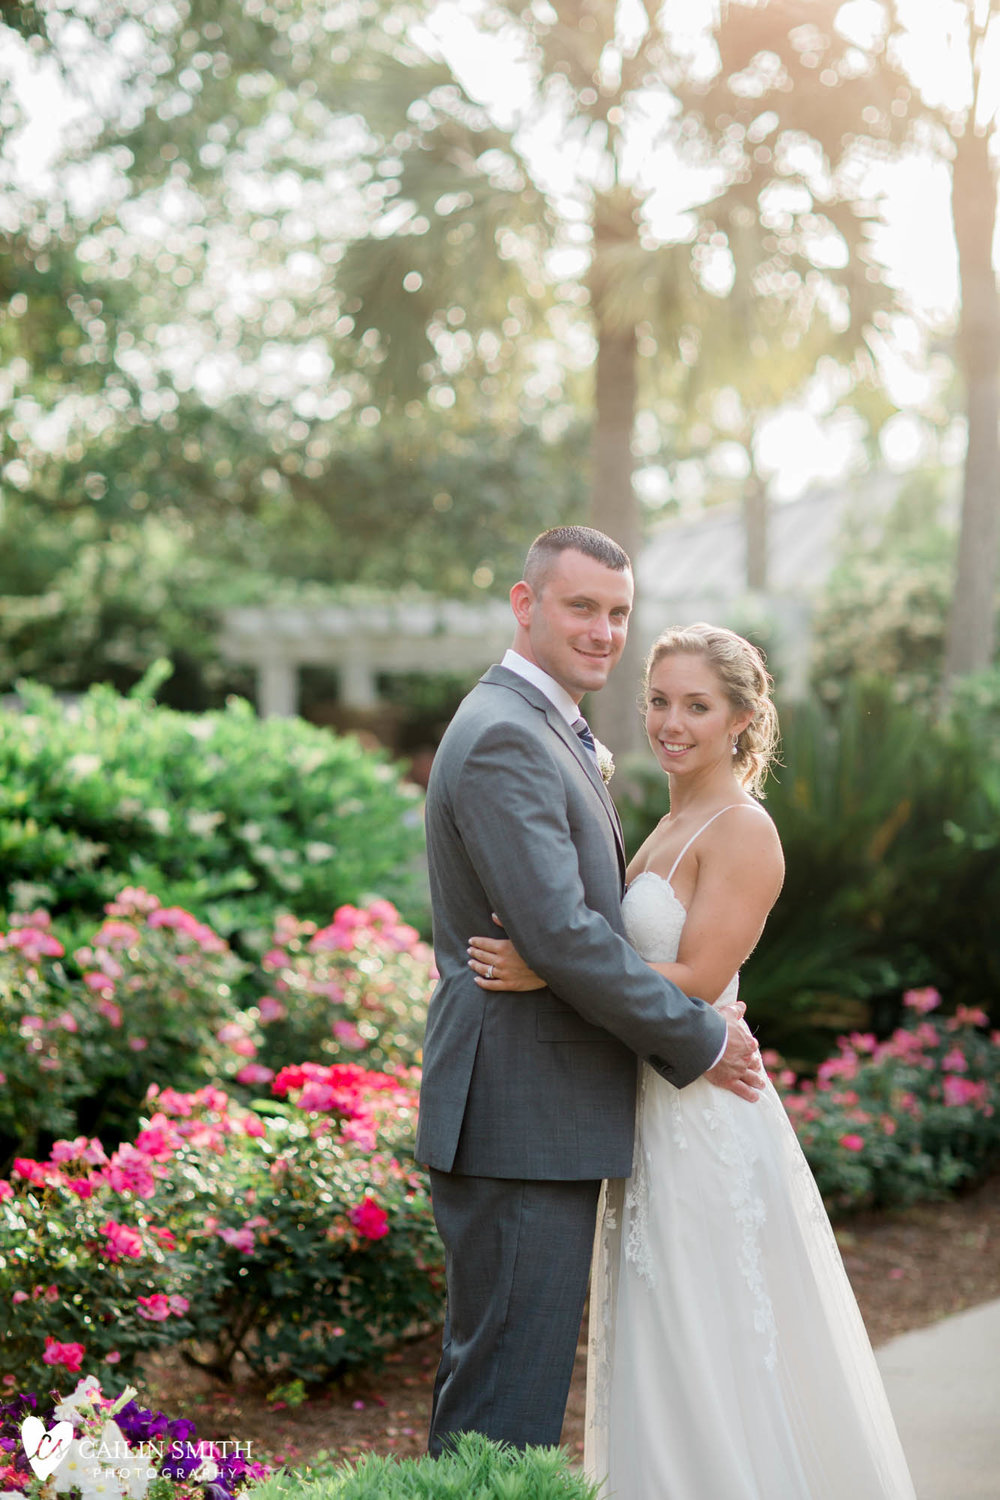 Sarah_Justin_St_Simons_Island_Lighthouse_Wedding_Photography_068.jpg